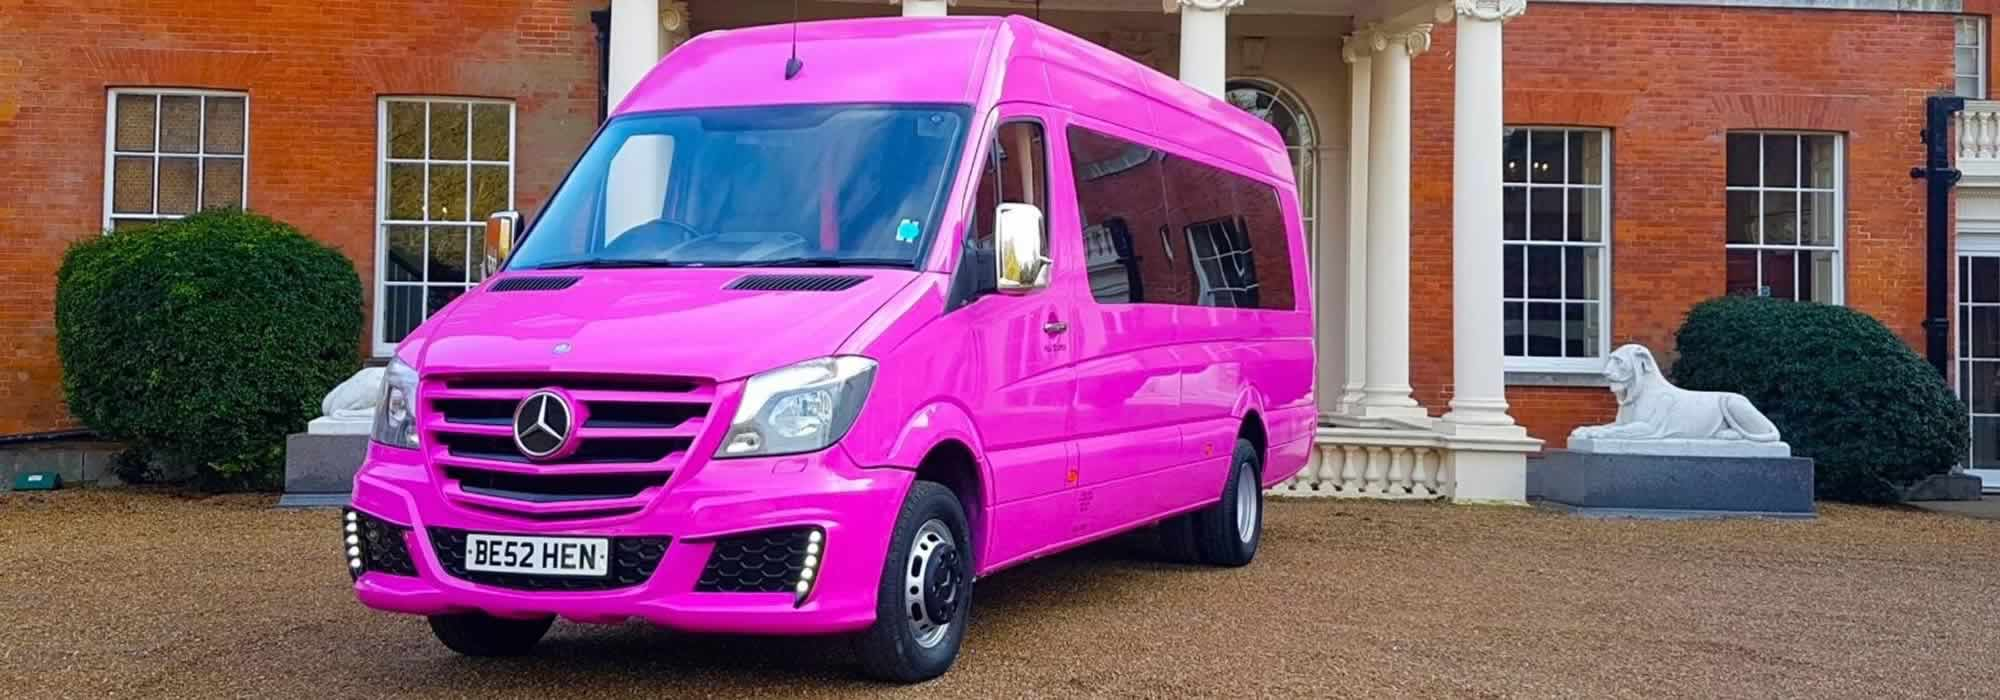 Pink Party Bus Luxury Hire From Herts Limos